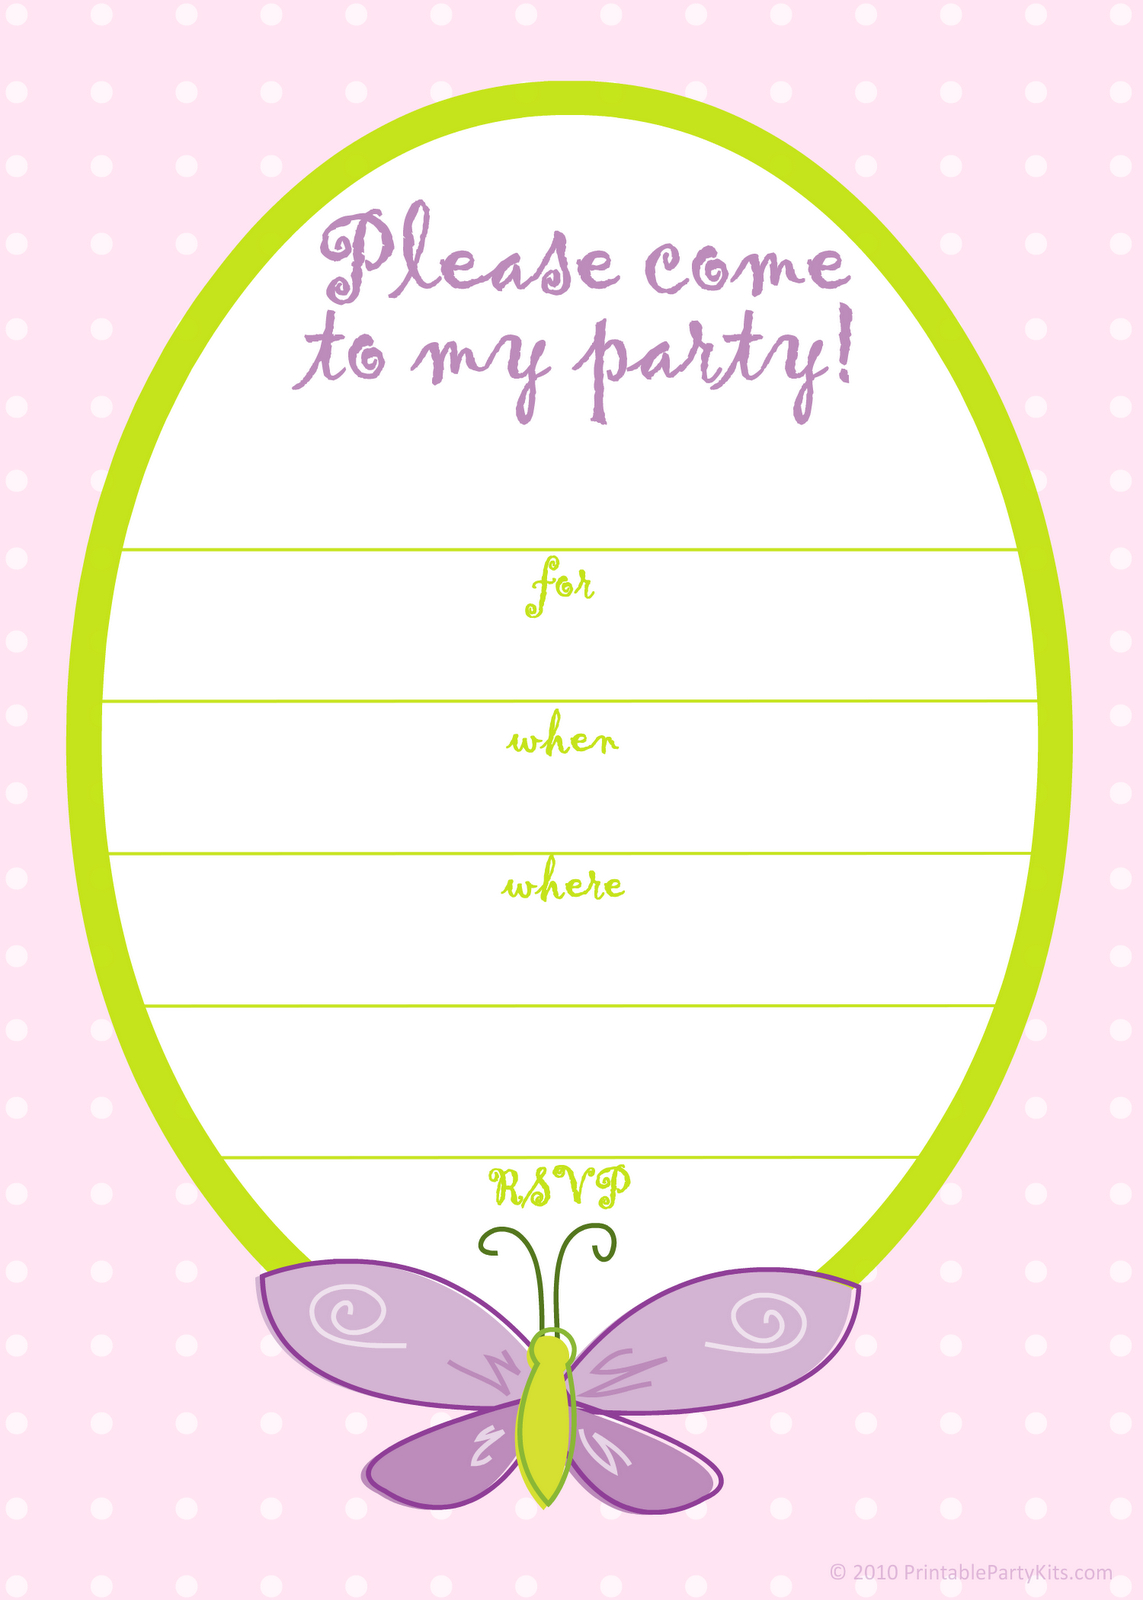 Free Printable Party Invitations: Free Pink Butterfly Girls Birthday - Free Printable Birthday Invitations For Girl